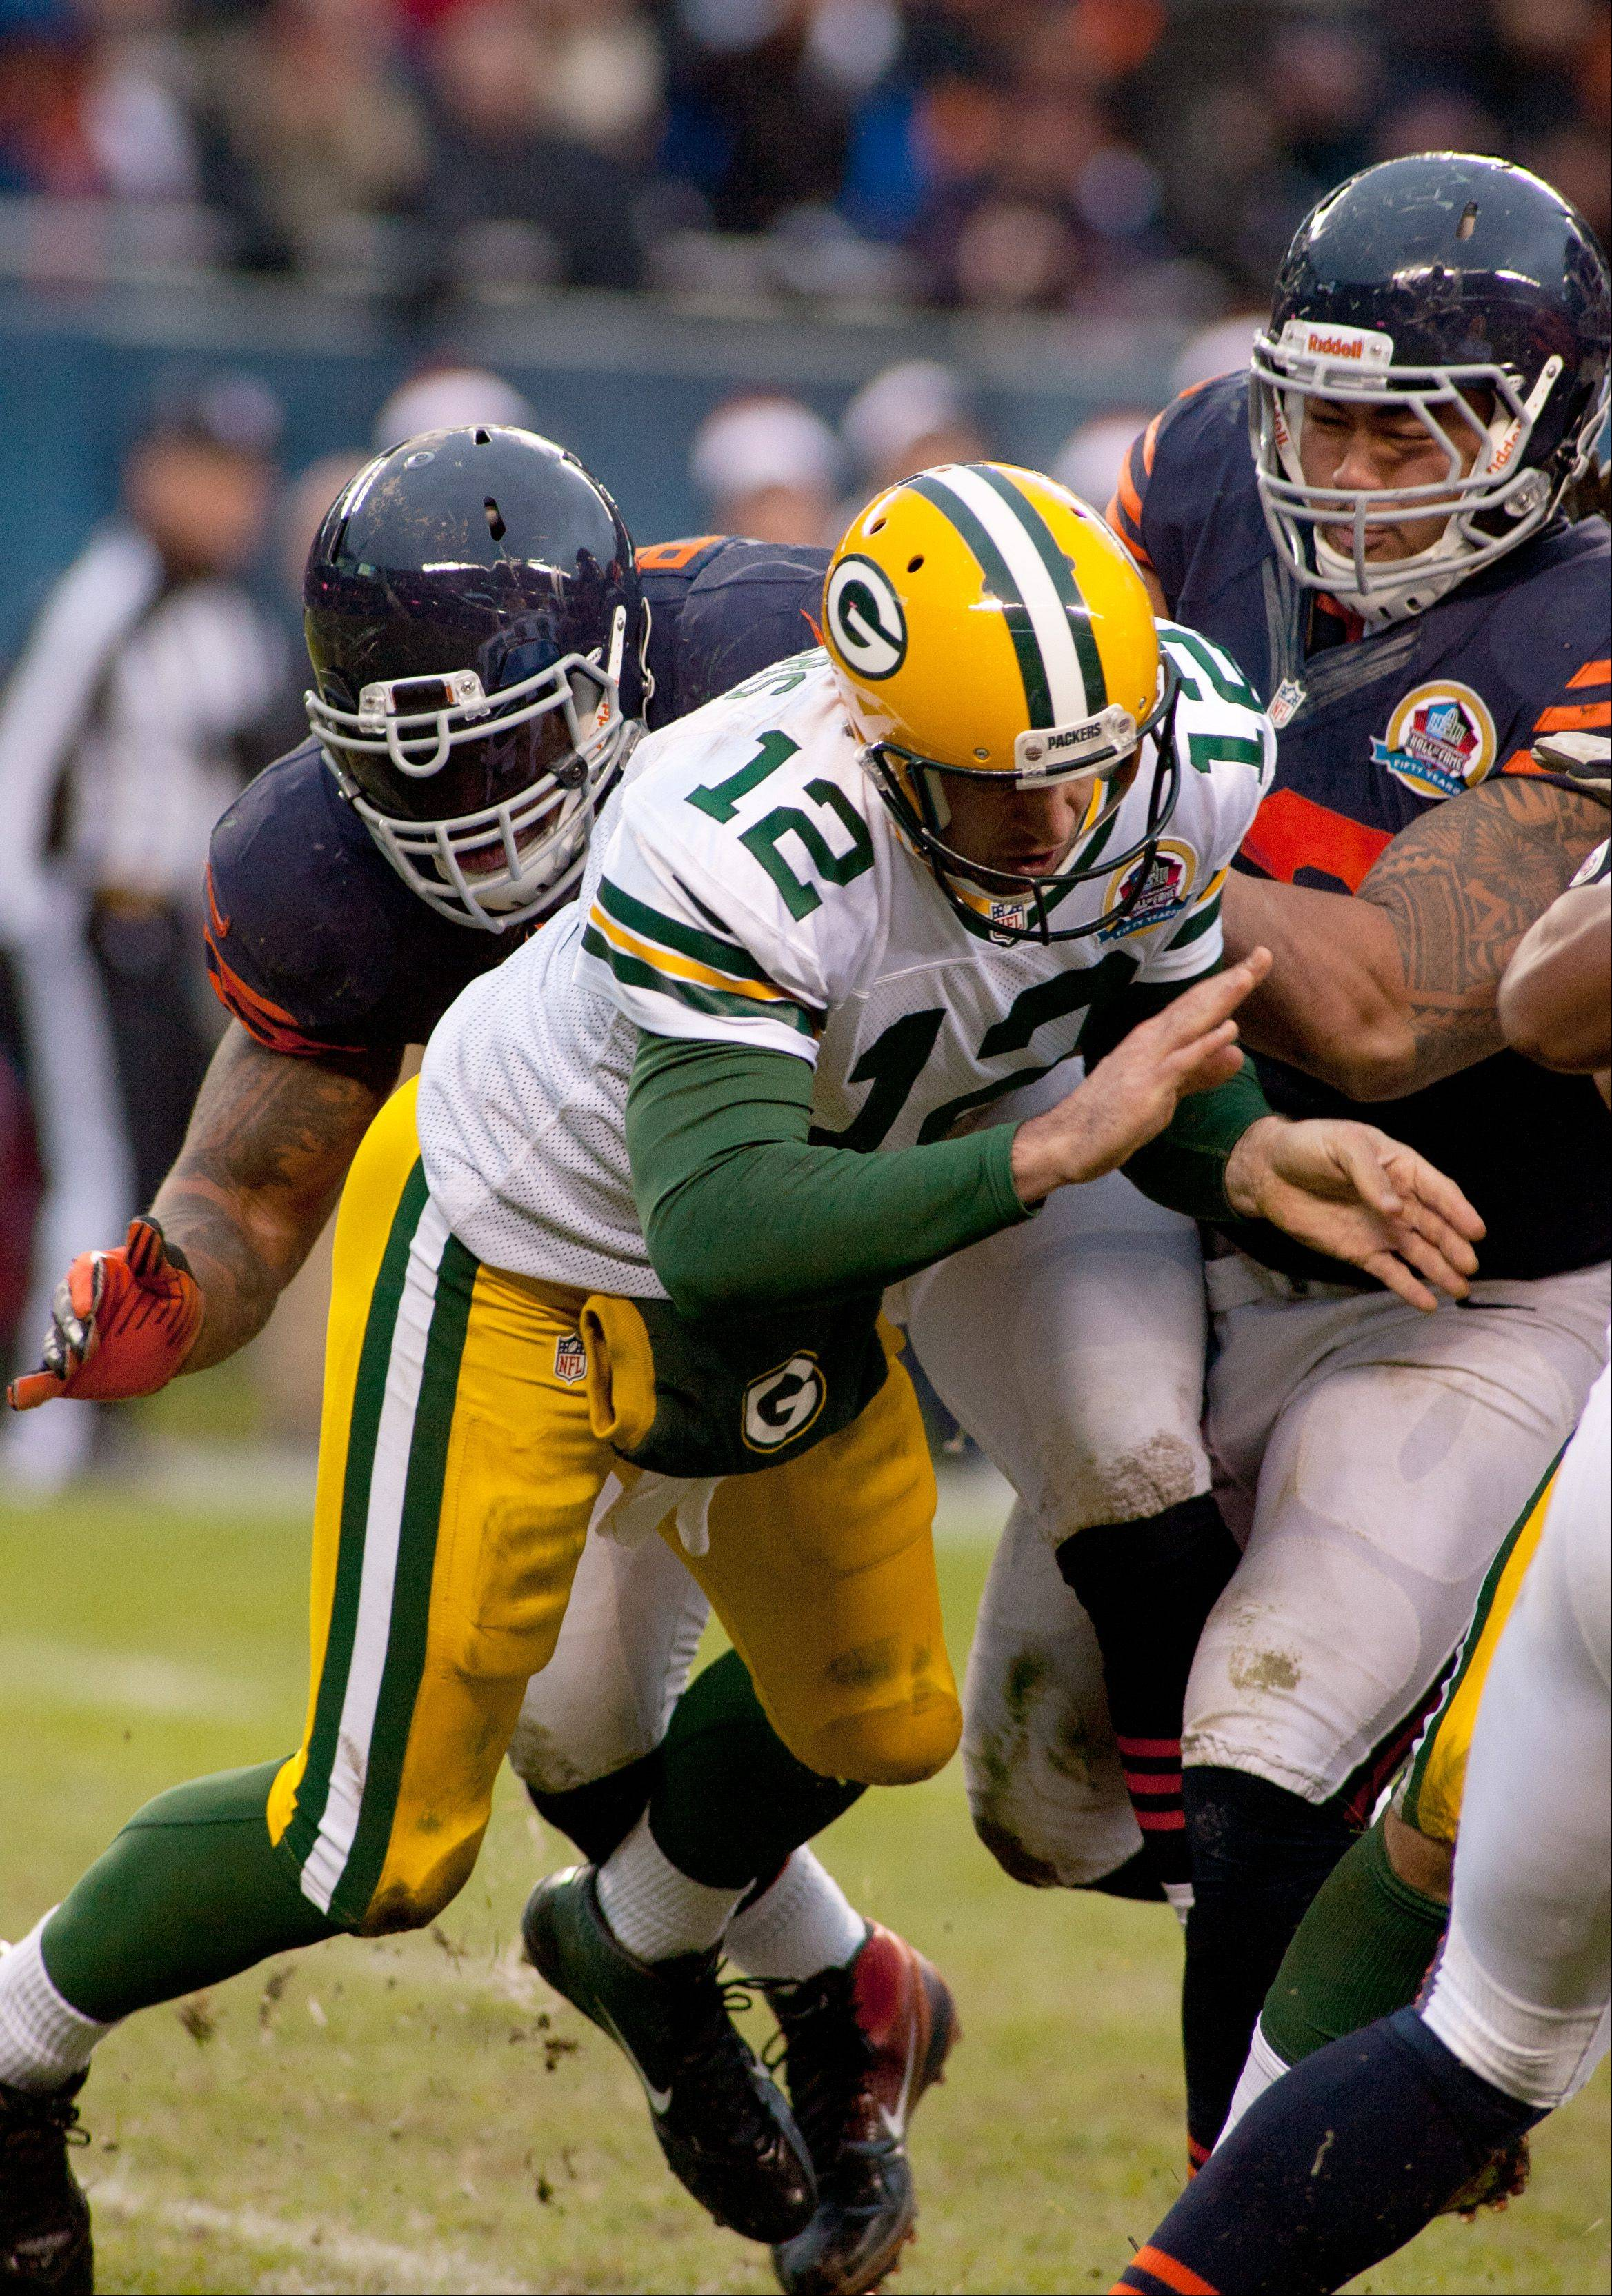 Bears get to Rodgers early, but then pressure disappears